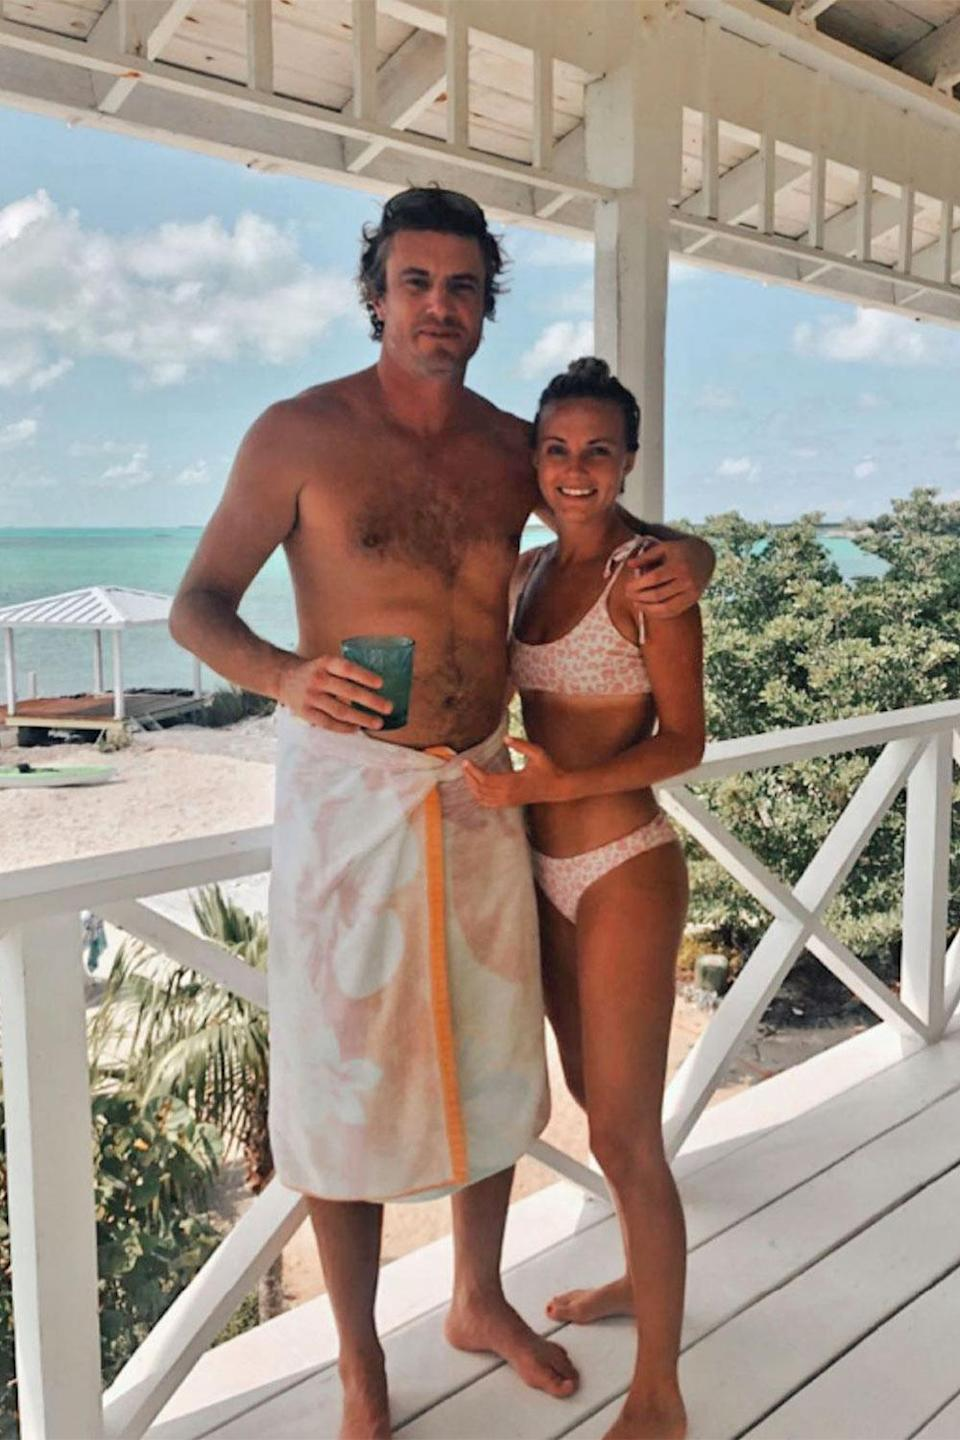 """<p>The idea of leaving bachelorhood behind for good has become much easier for the <em>Southern Charm</em> star since dating <a href=""""https://people.com/tv/southern-charms-shep-rose-goes-instagram-official-with-new-girlfriend/"""" rel=""""nofollow noopener"""" target=""""_blank"""" data-ylk=""""slk:girlfriend Taylor Ann Green"""" class=""""link rapid-noclick-resp"""">girlfriend Taylor Ann Green</a>. Rose revealed on <a href=""""http://people.com/tag/watch-what-happens-live"""" rel=""""nofollow noopener"""" target=""""_blank"""" data-ylk=""""slk:Watch What Happens Live with Andy Cohen"""" class=""""link rapid-noclick-resp""""><em>Watch What Happens Live with Andy Cohen</em></a> that the two are <a href=""""https://people.com/tv/southern-charm-shep-rose-talks-monogamy-quarantining-with-taylor-ann-green/"""" rel=""""nofollow noopener"""" target=""""_blank"""" data-ylk=""""slk:currently quarantining together"""" class=""""link rapid-noclick-resp"""">currently quarantining together</a> and Rose has been enjoying relation-<em>shep</em> life.</p> <p>""""Honestly, we were like a married couple two or three months into our relationship, so, that was a change and I was kind of nervous about it — but I must say, domesticity isn't all that bad, and maybe I was being scared of it for no reason at all,"""" he said.</p>"""